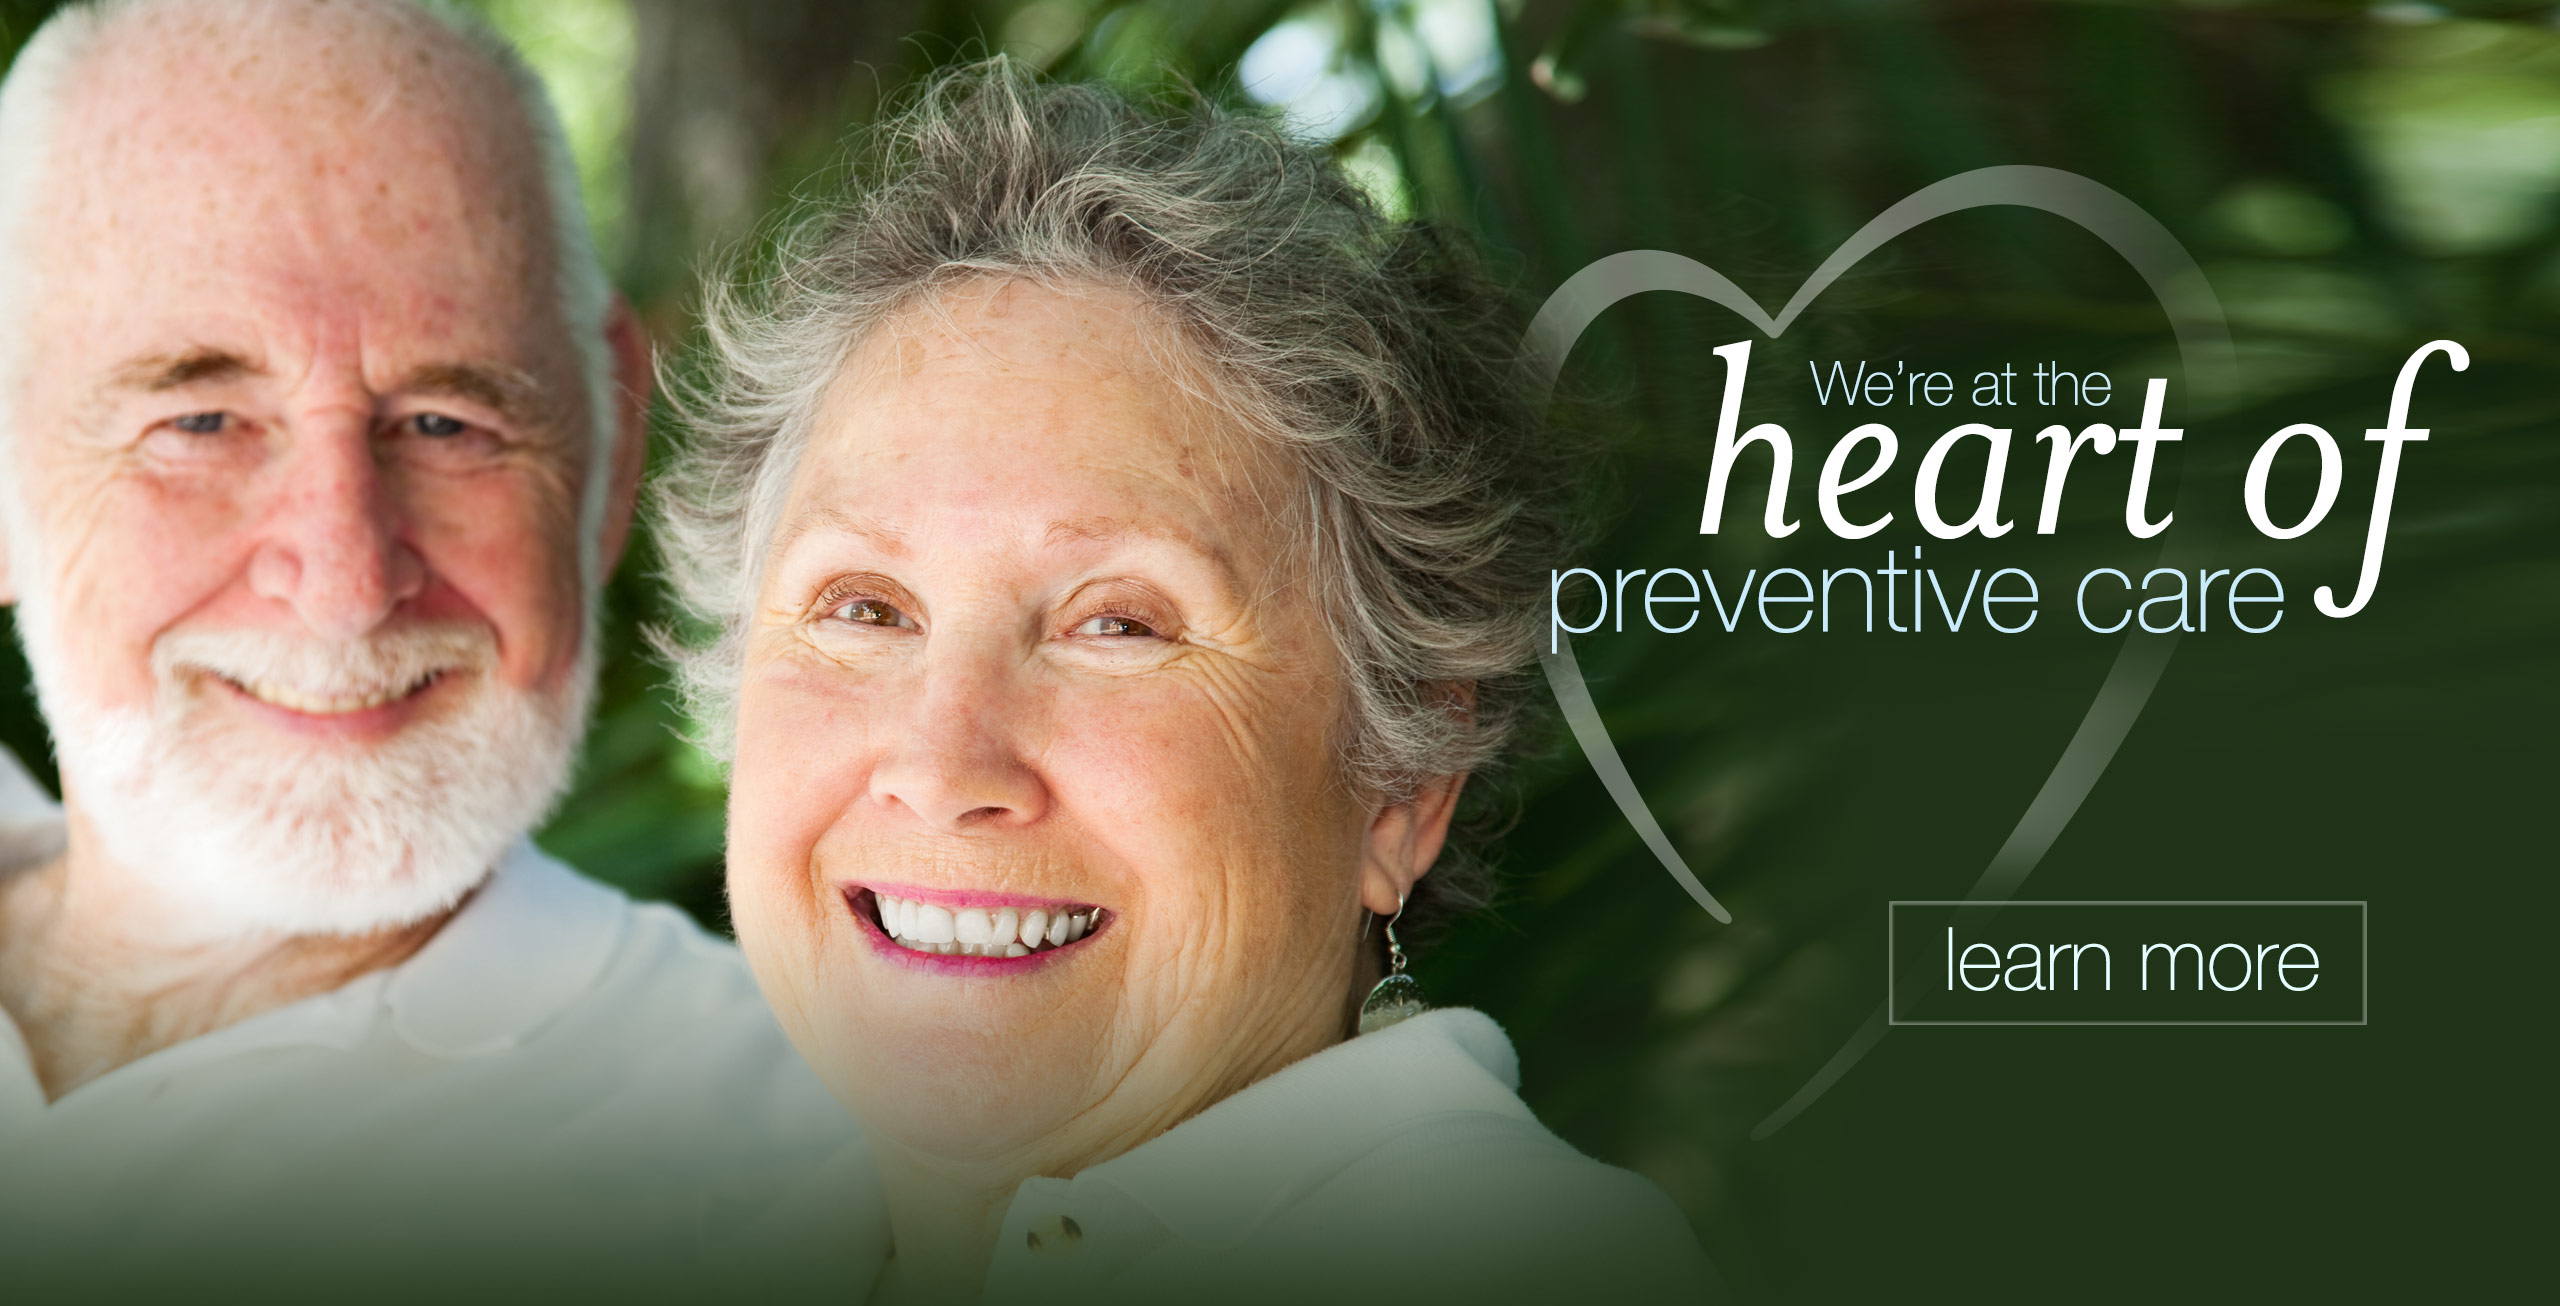 PrevMED the Heart of Preventive Care